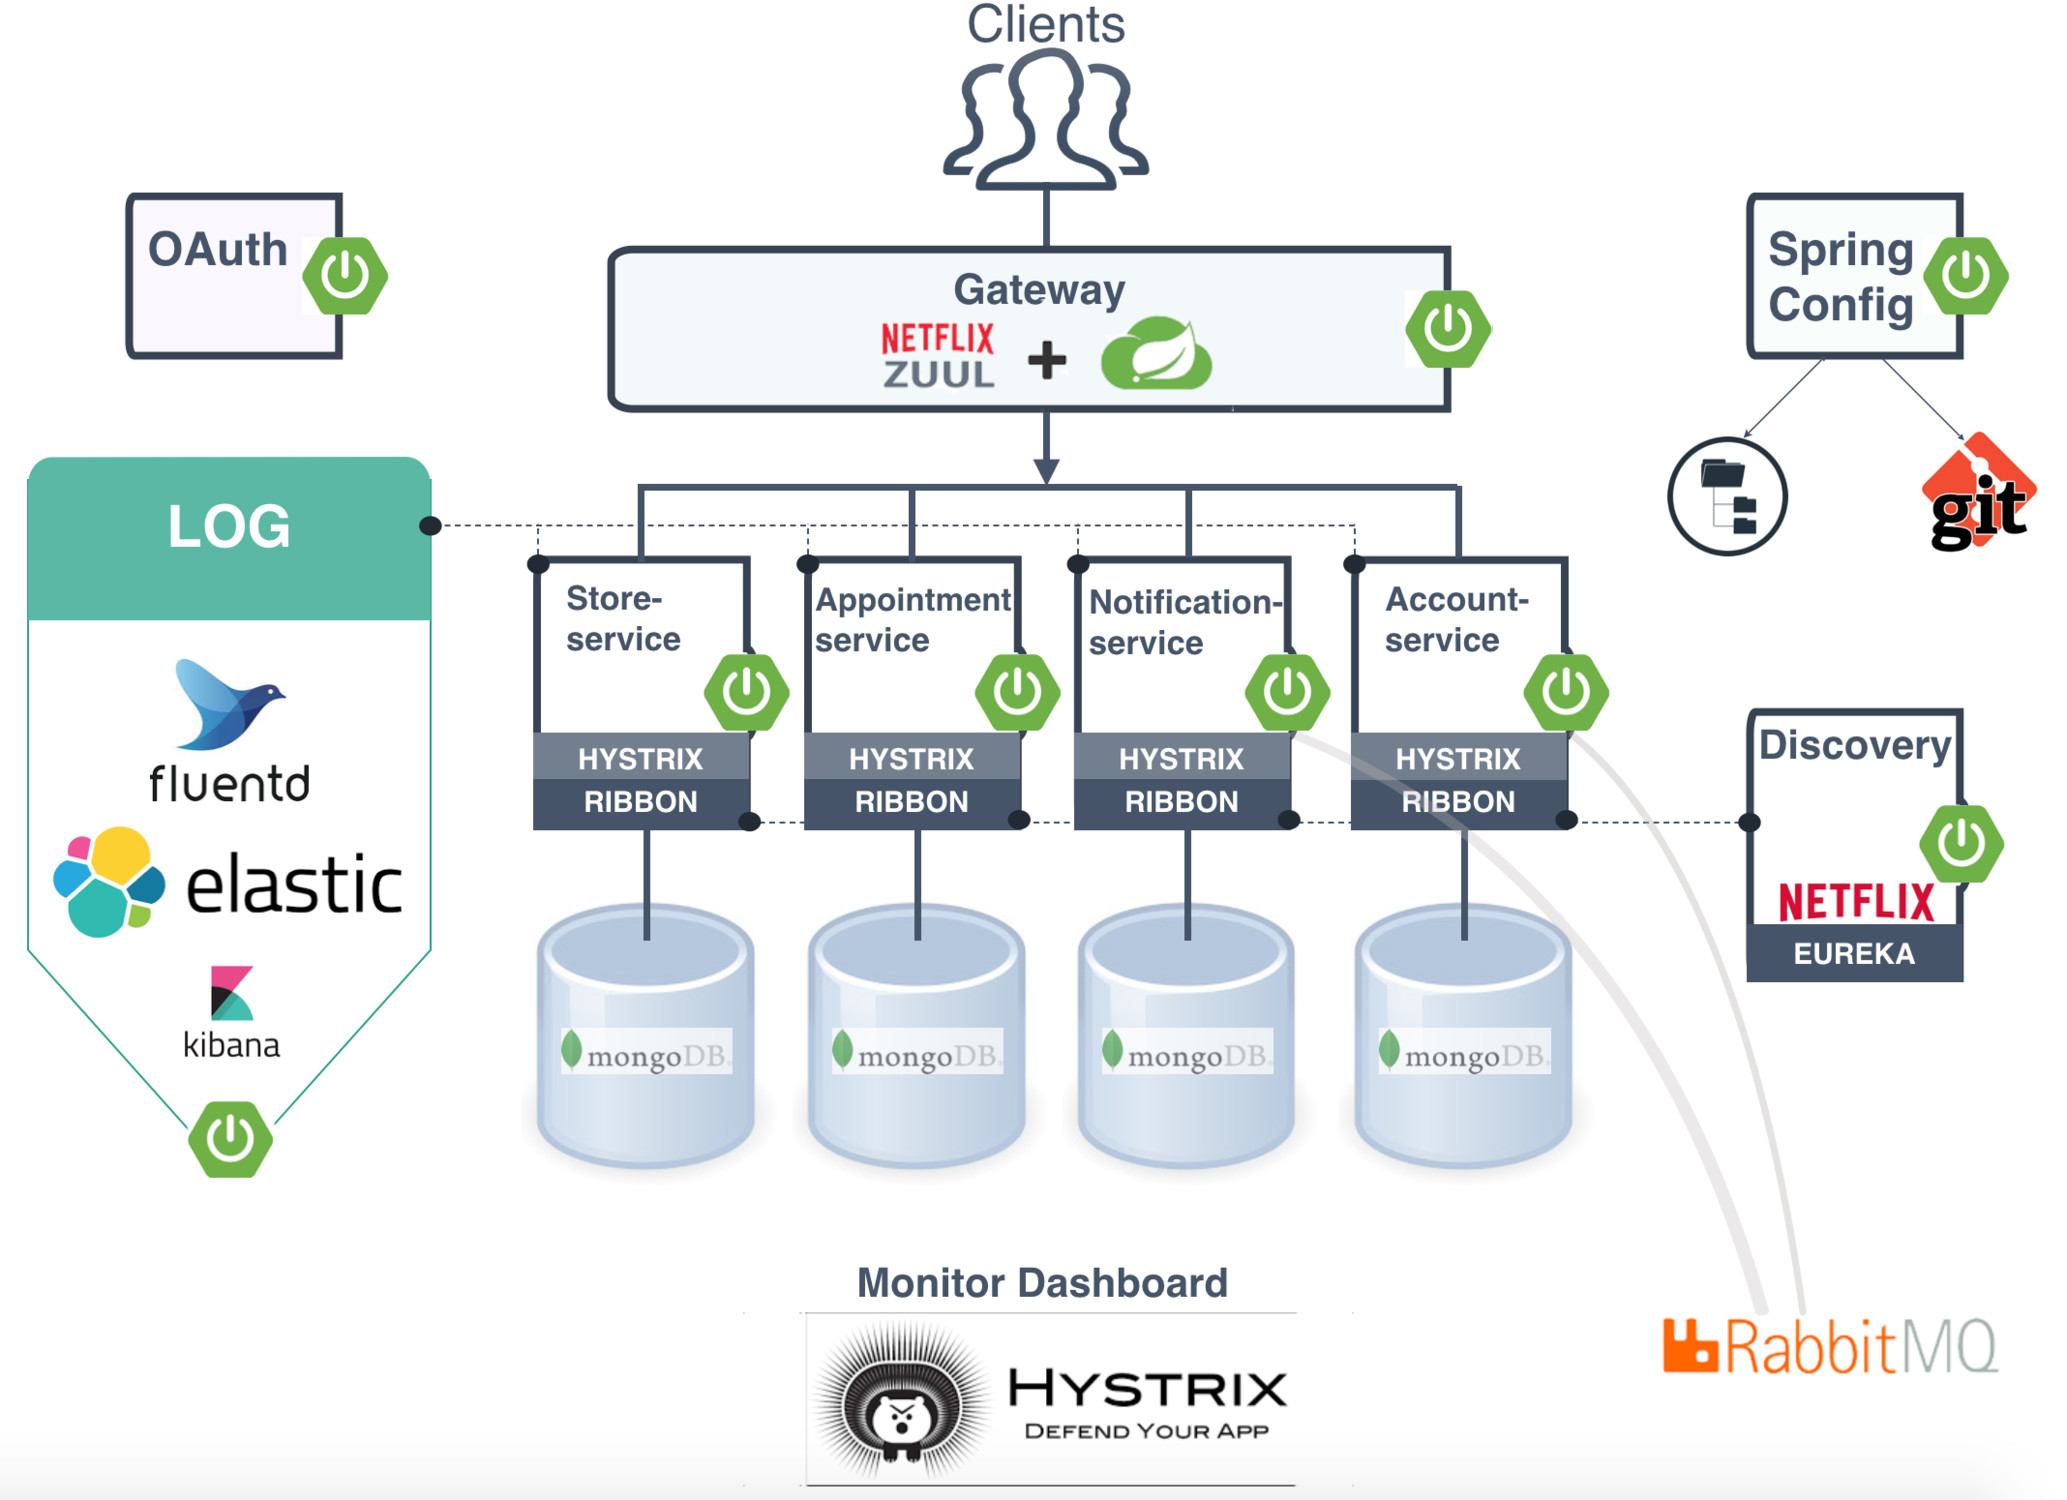 Event driven microservices architecture using Spring Cloud